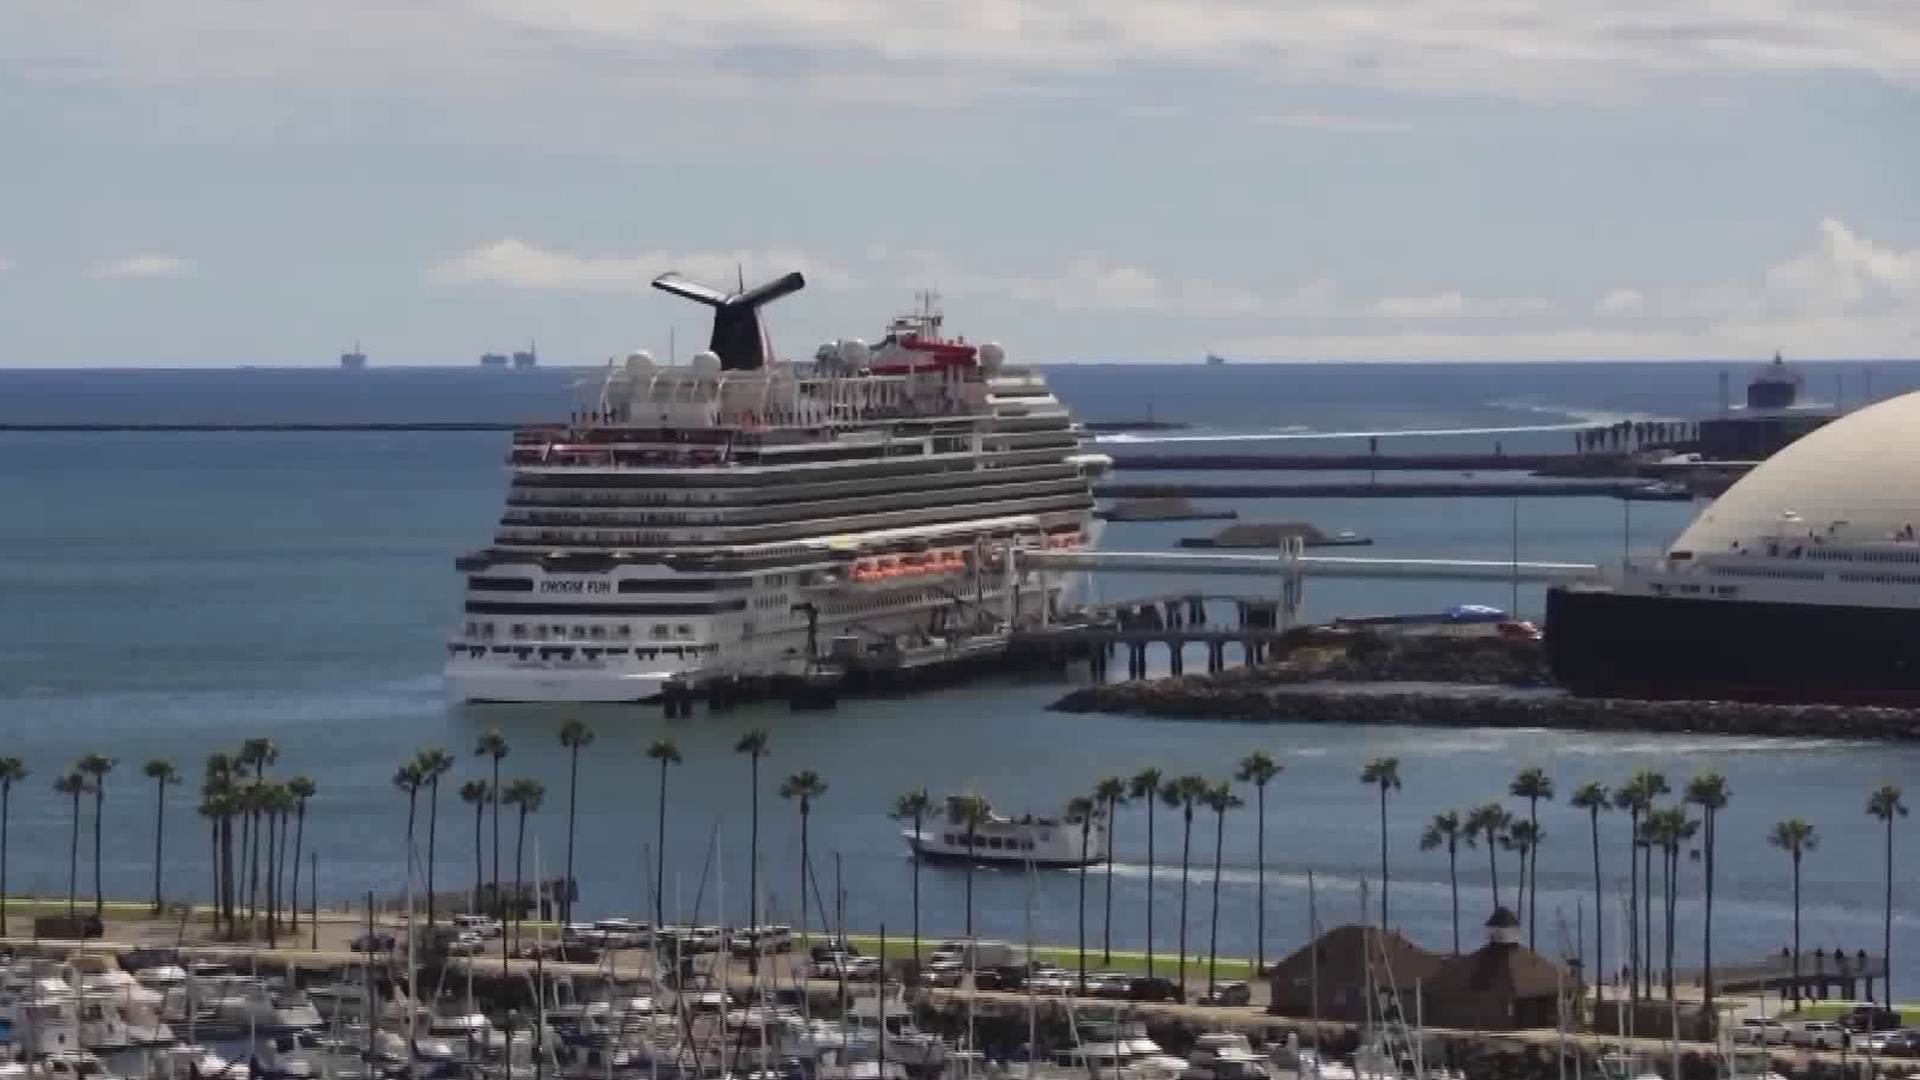 A Carnival cruise ship is seen docked in Long Beach on March 7, 2020. (KTLA)